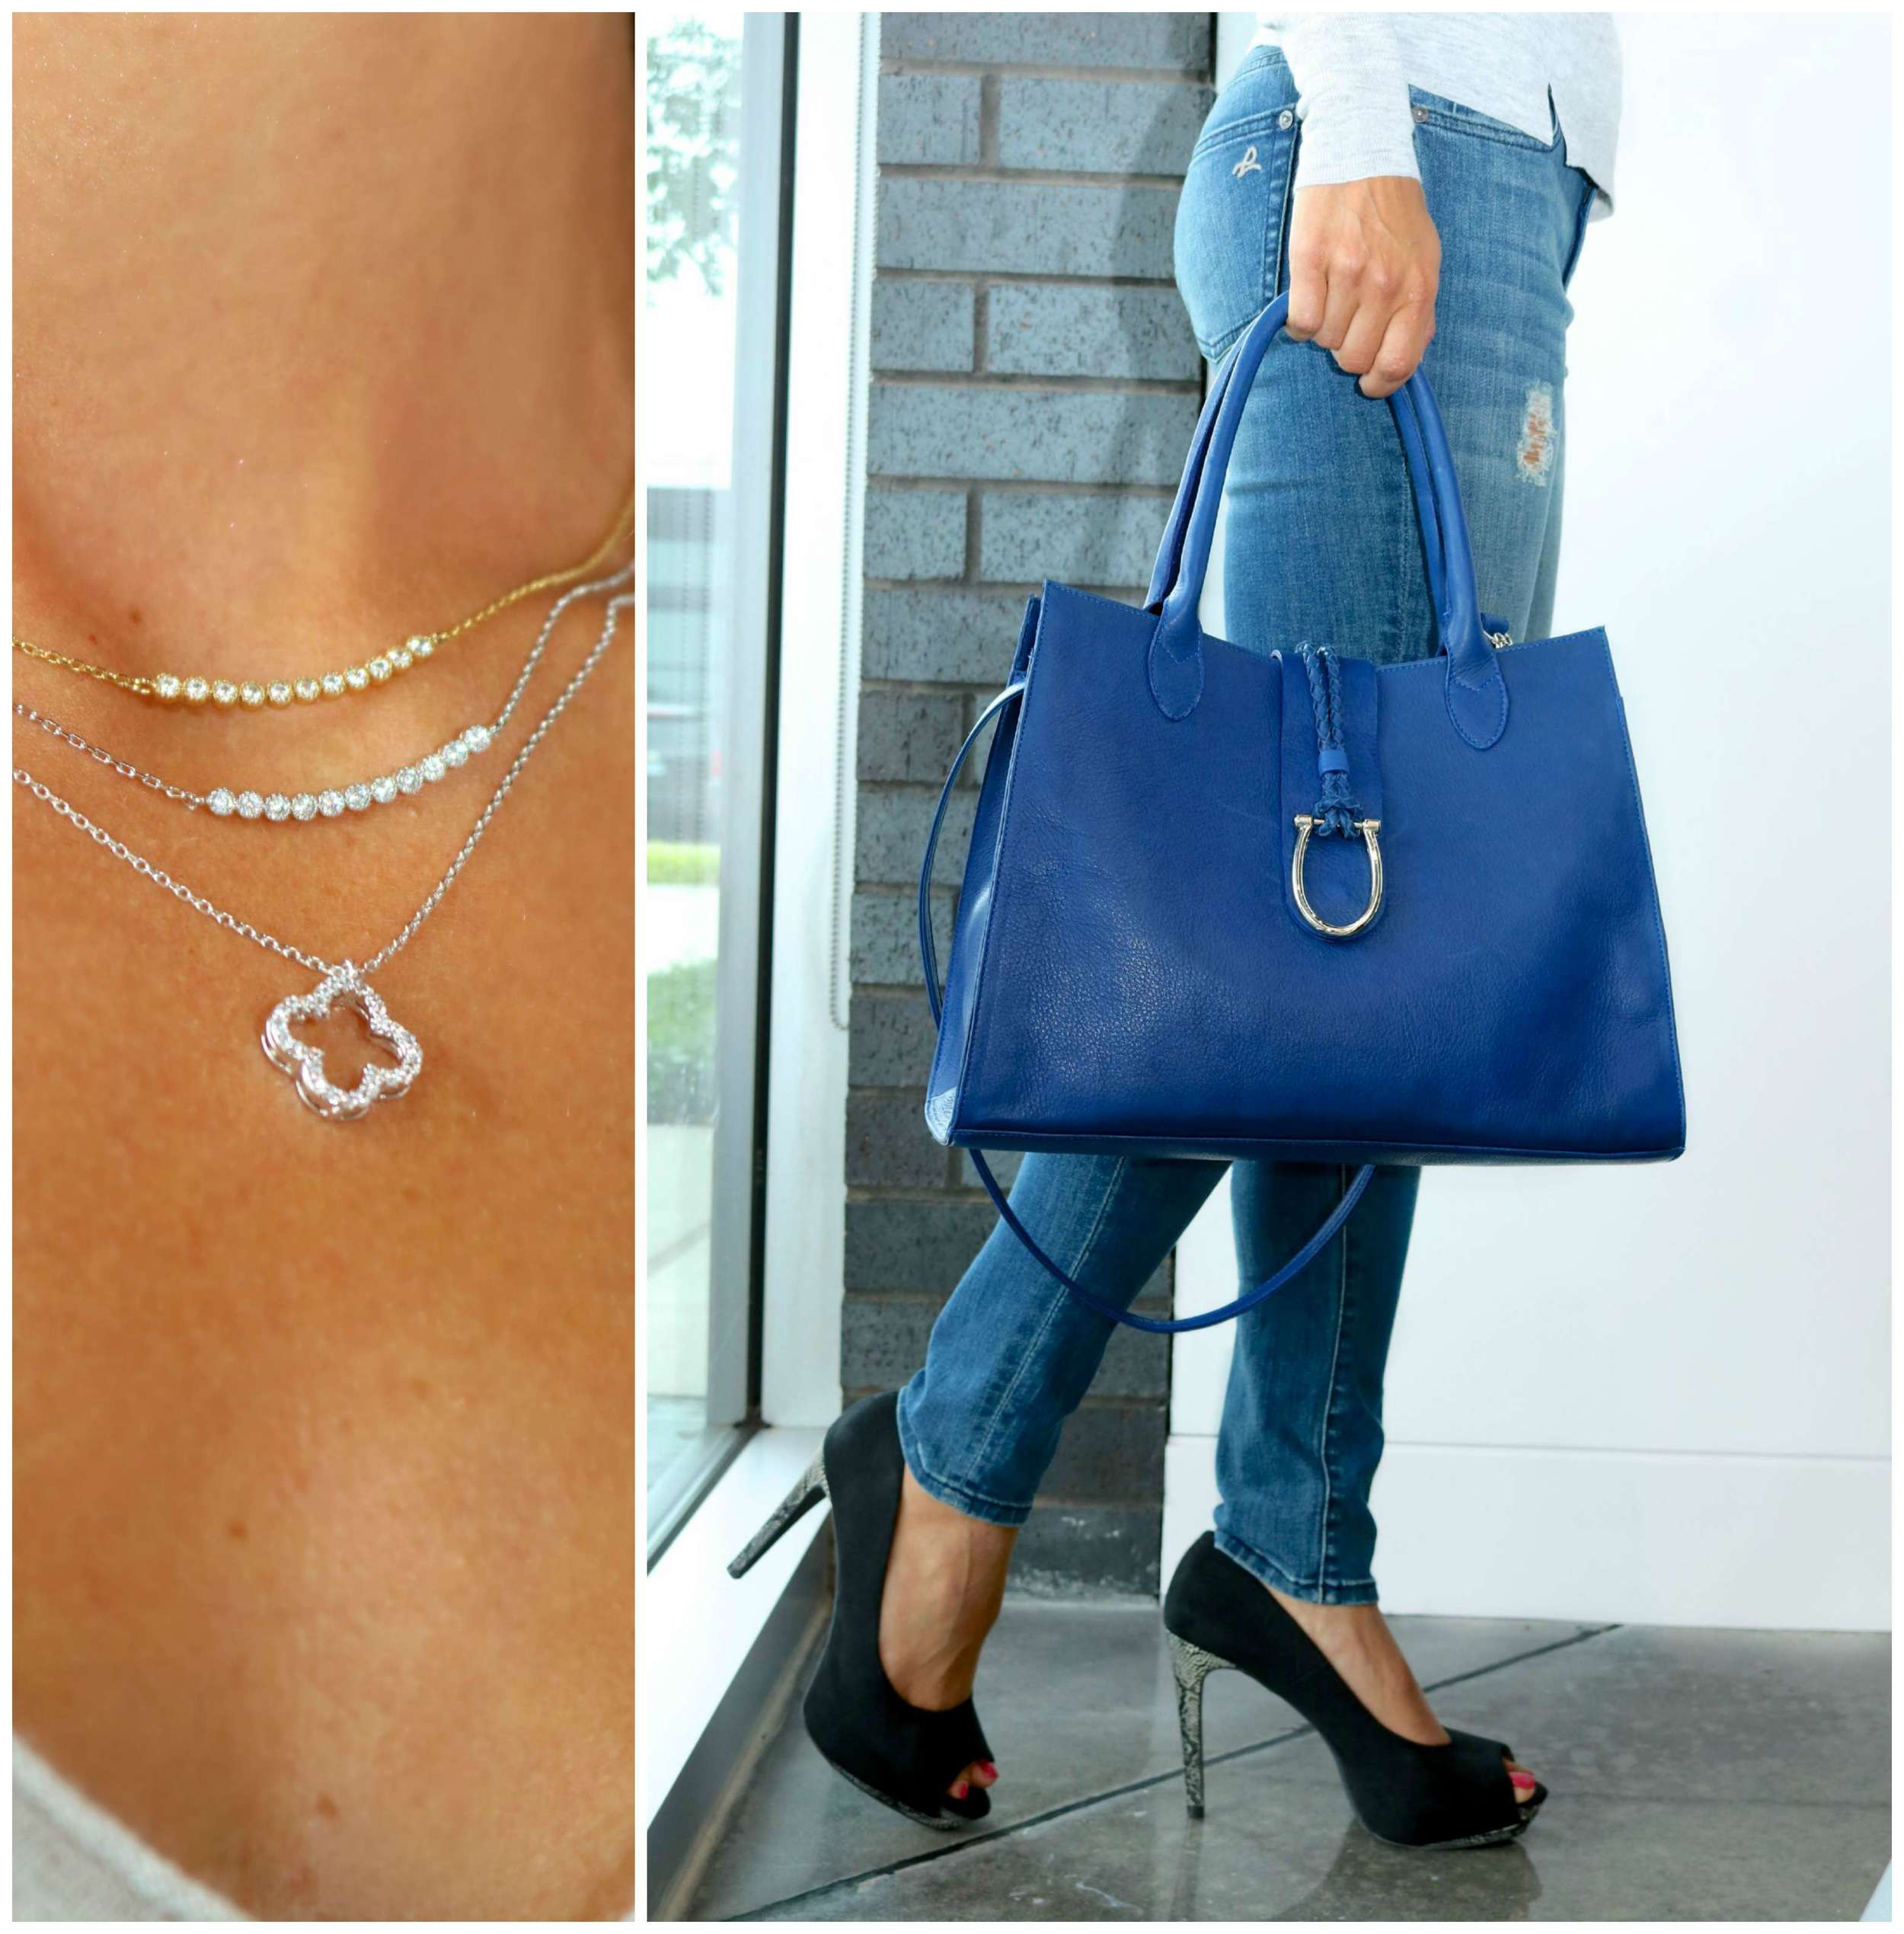 White Gold and Yellow Gold Necklace Separates & LAGGO bag